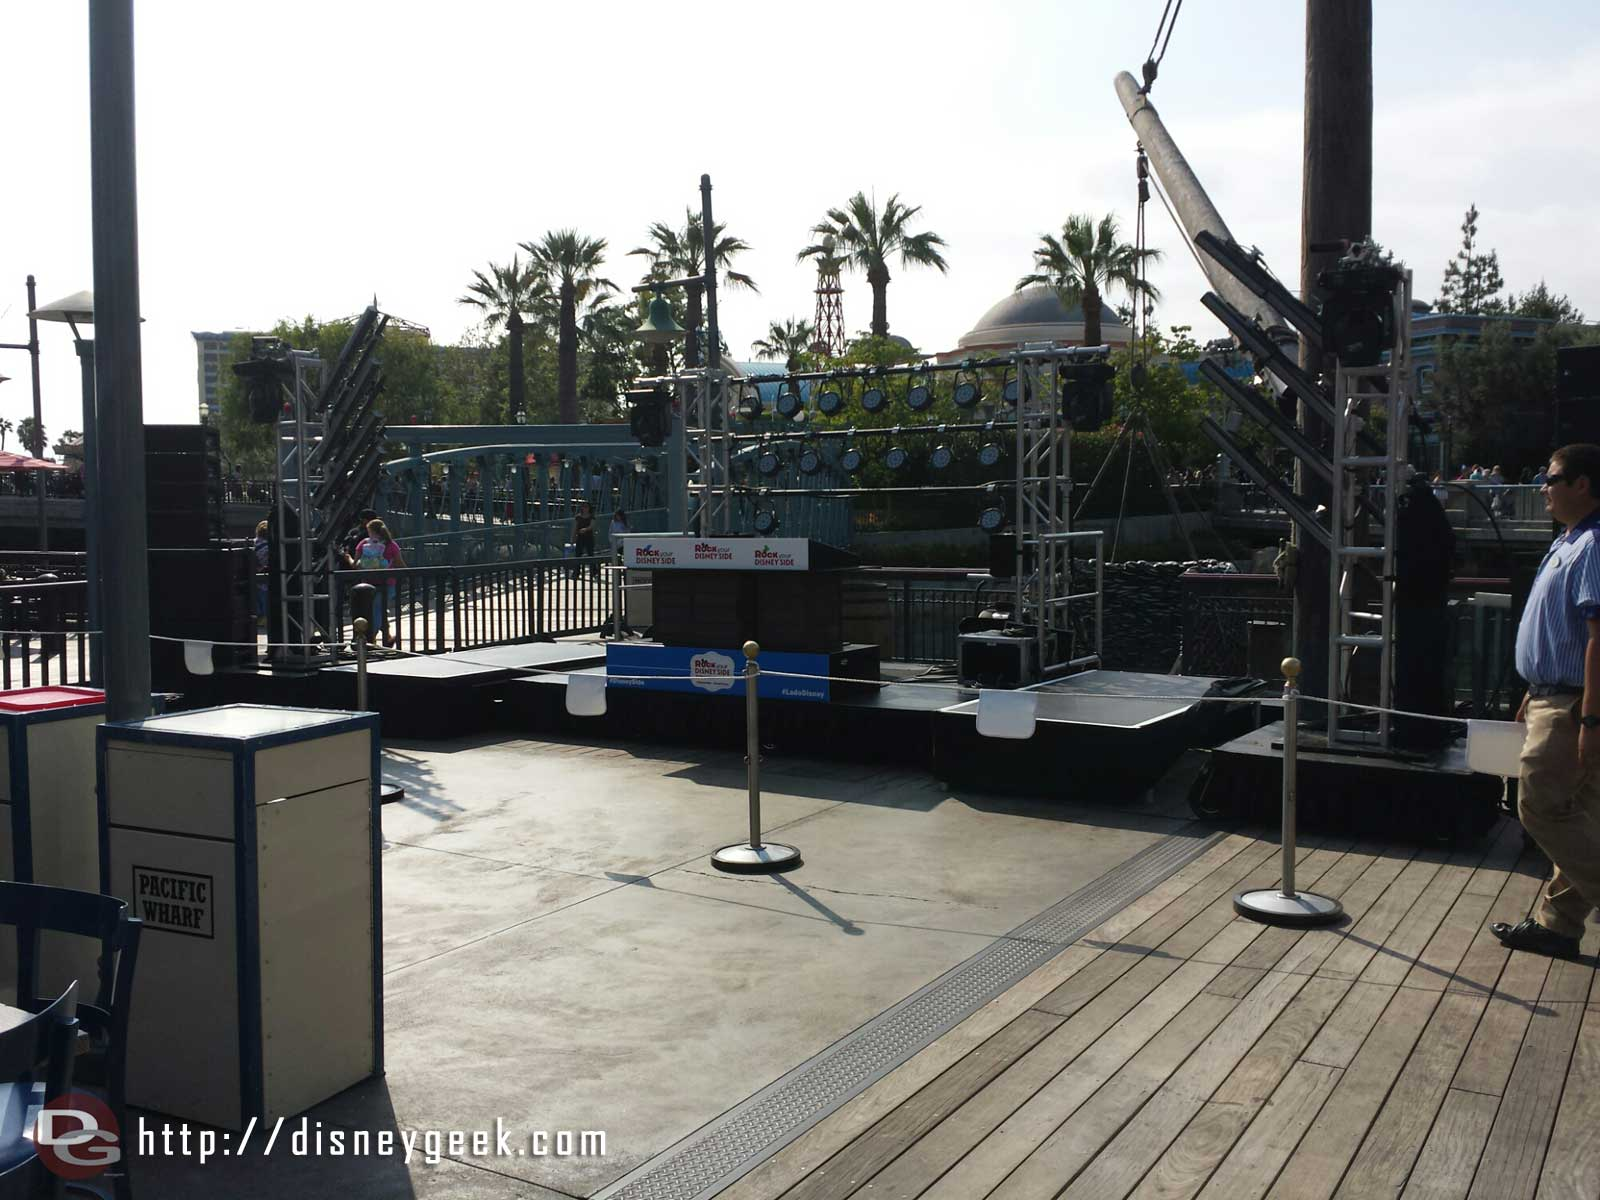 A stage set up on the Pacific Wharf for later this evening